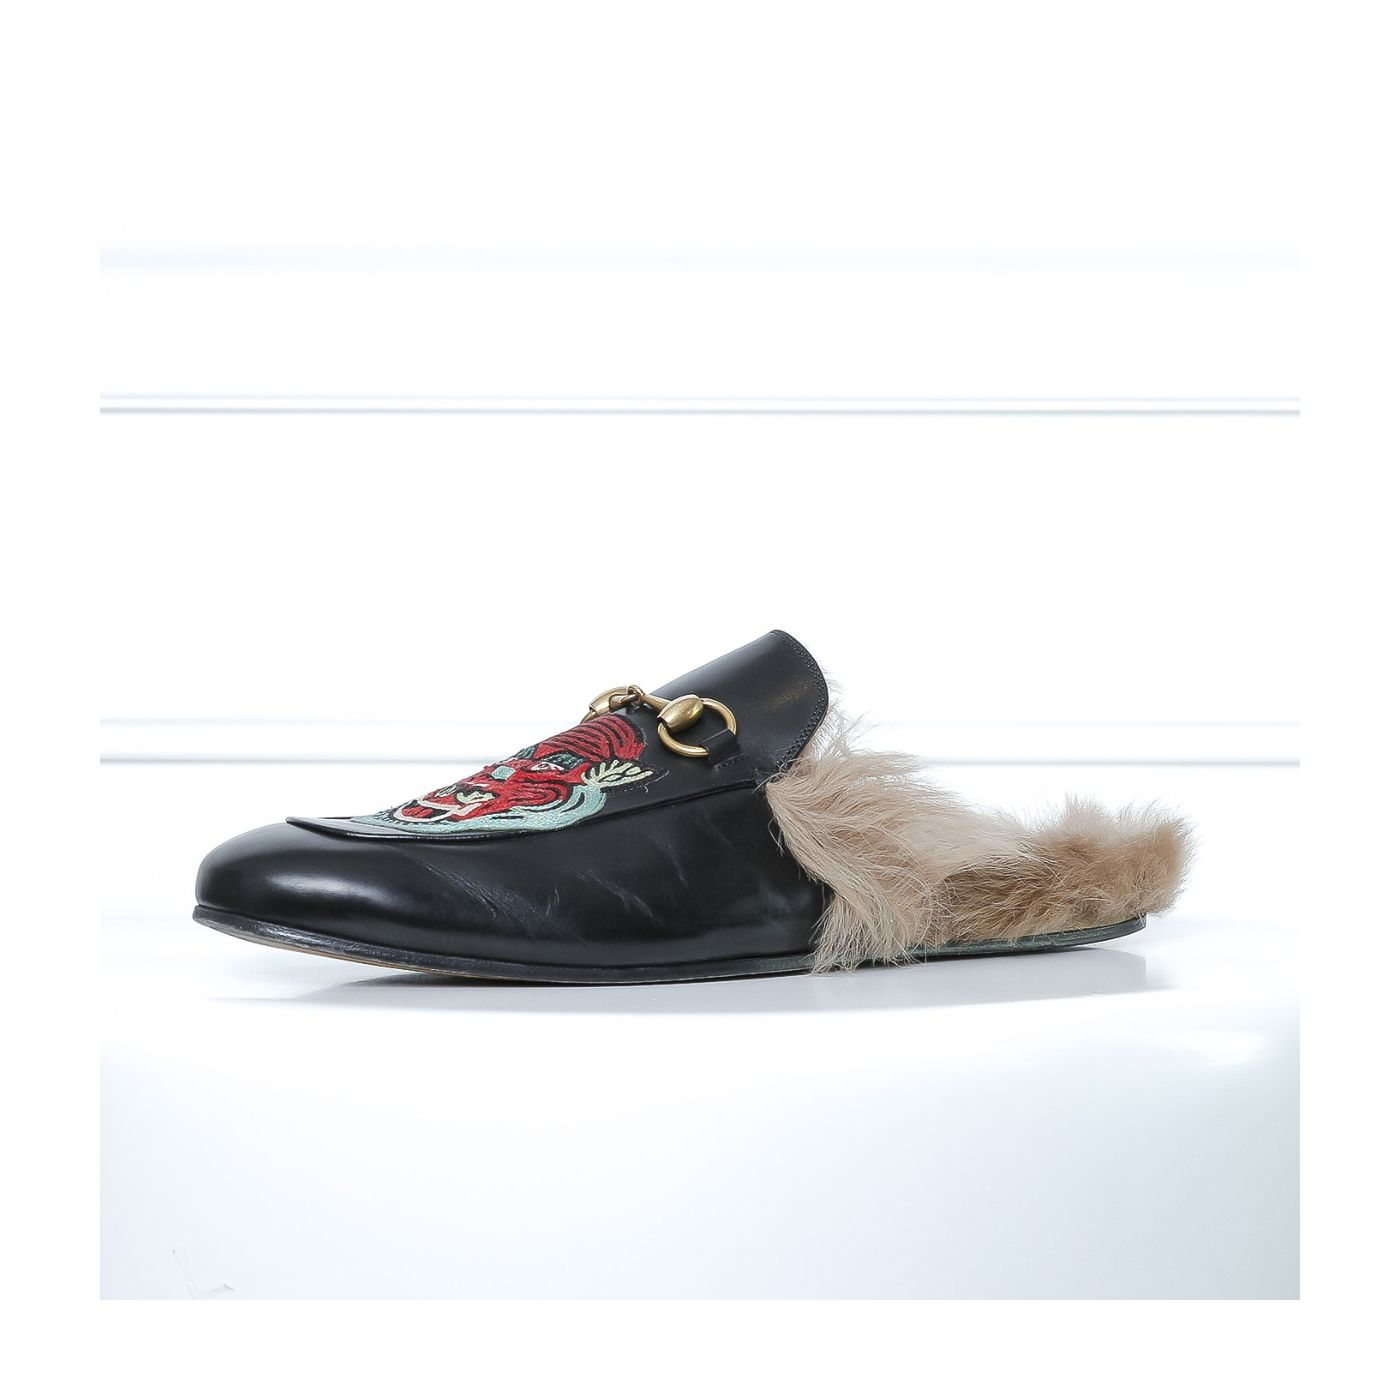 Gucci Black UFO & Tiger Applique Princetown Men's Slippers 9